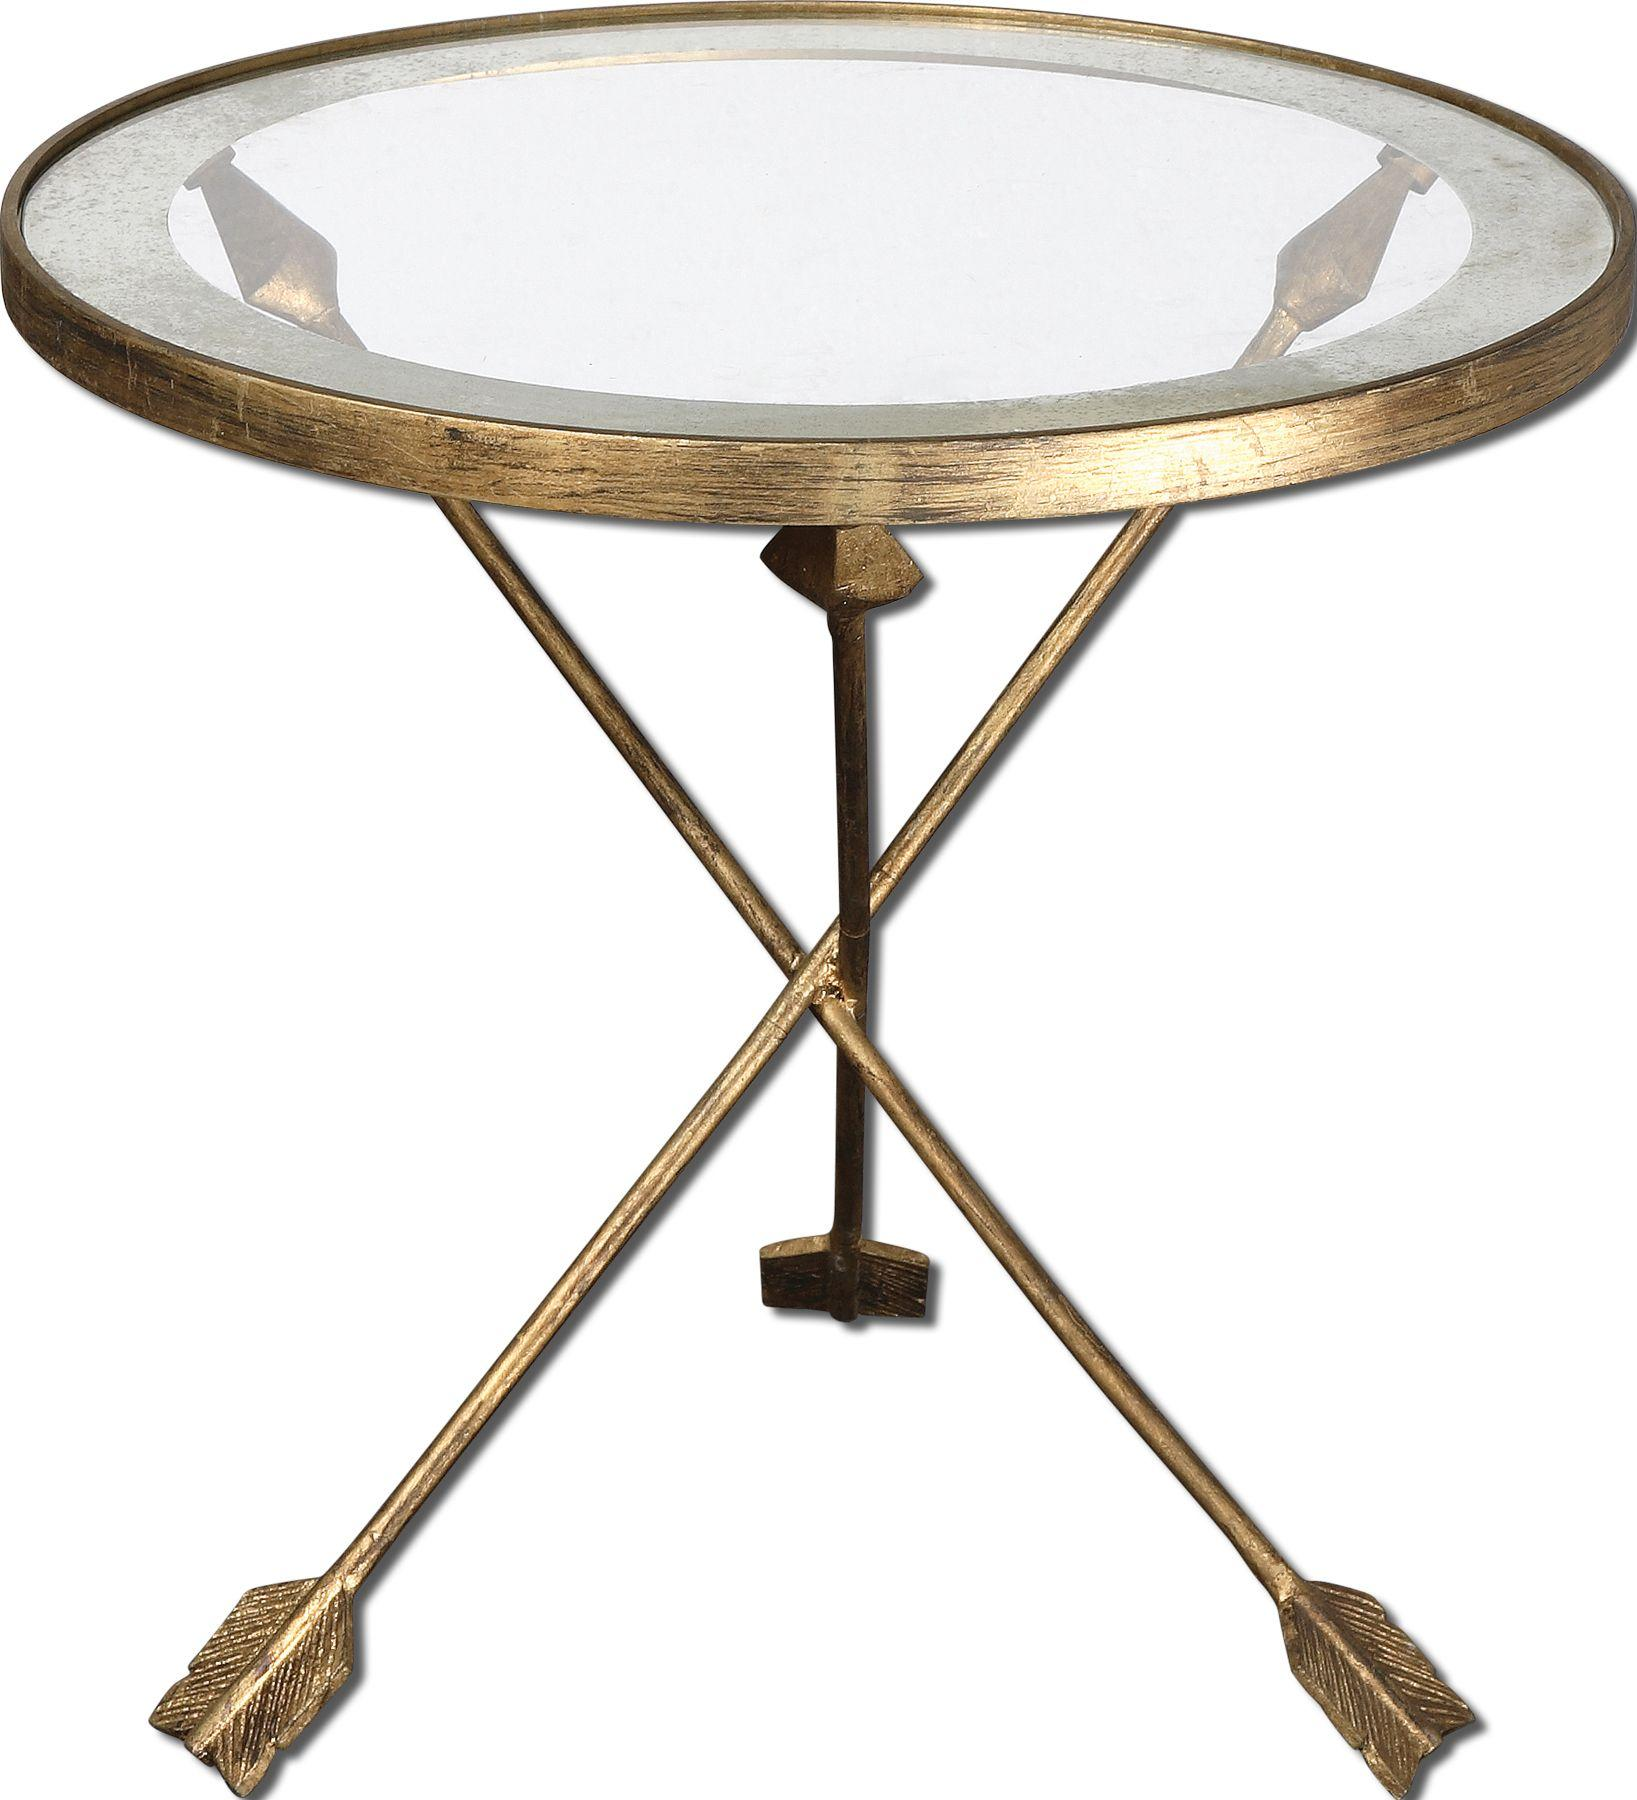 uttermost accent furniture occasional tables aero products color end table with mirror best chairs old kitchen tall square coffee triangle nightstand meyda tiffany lighting clear